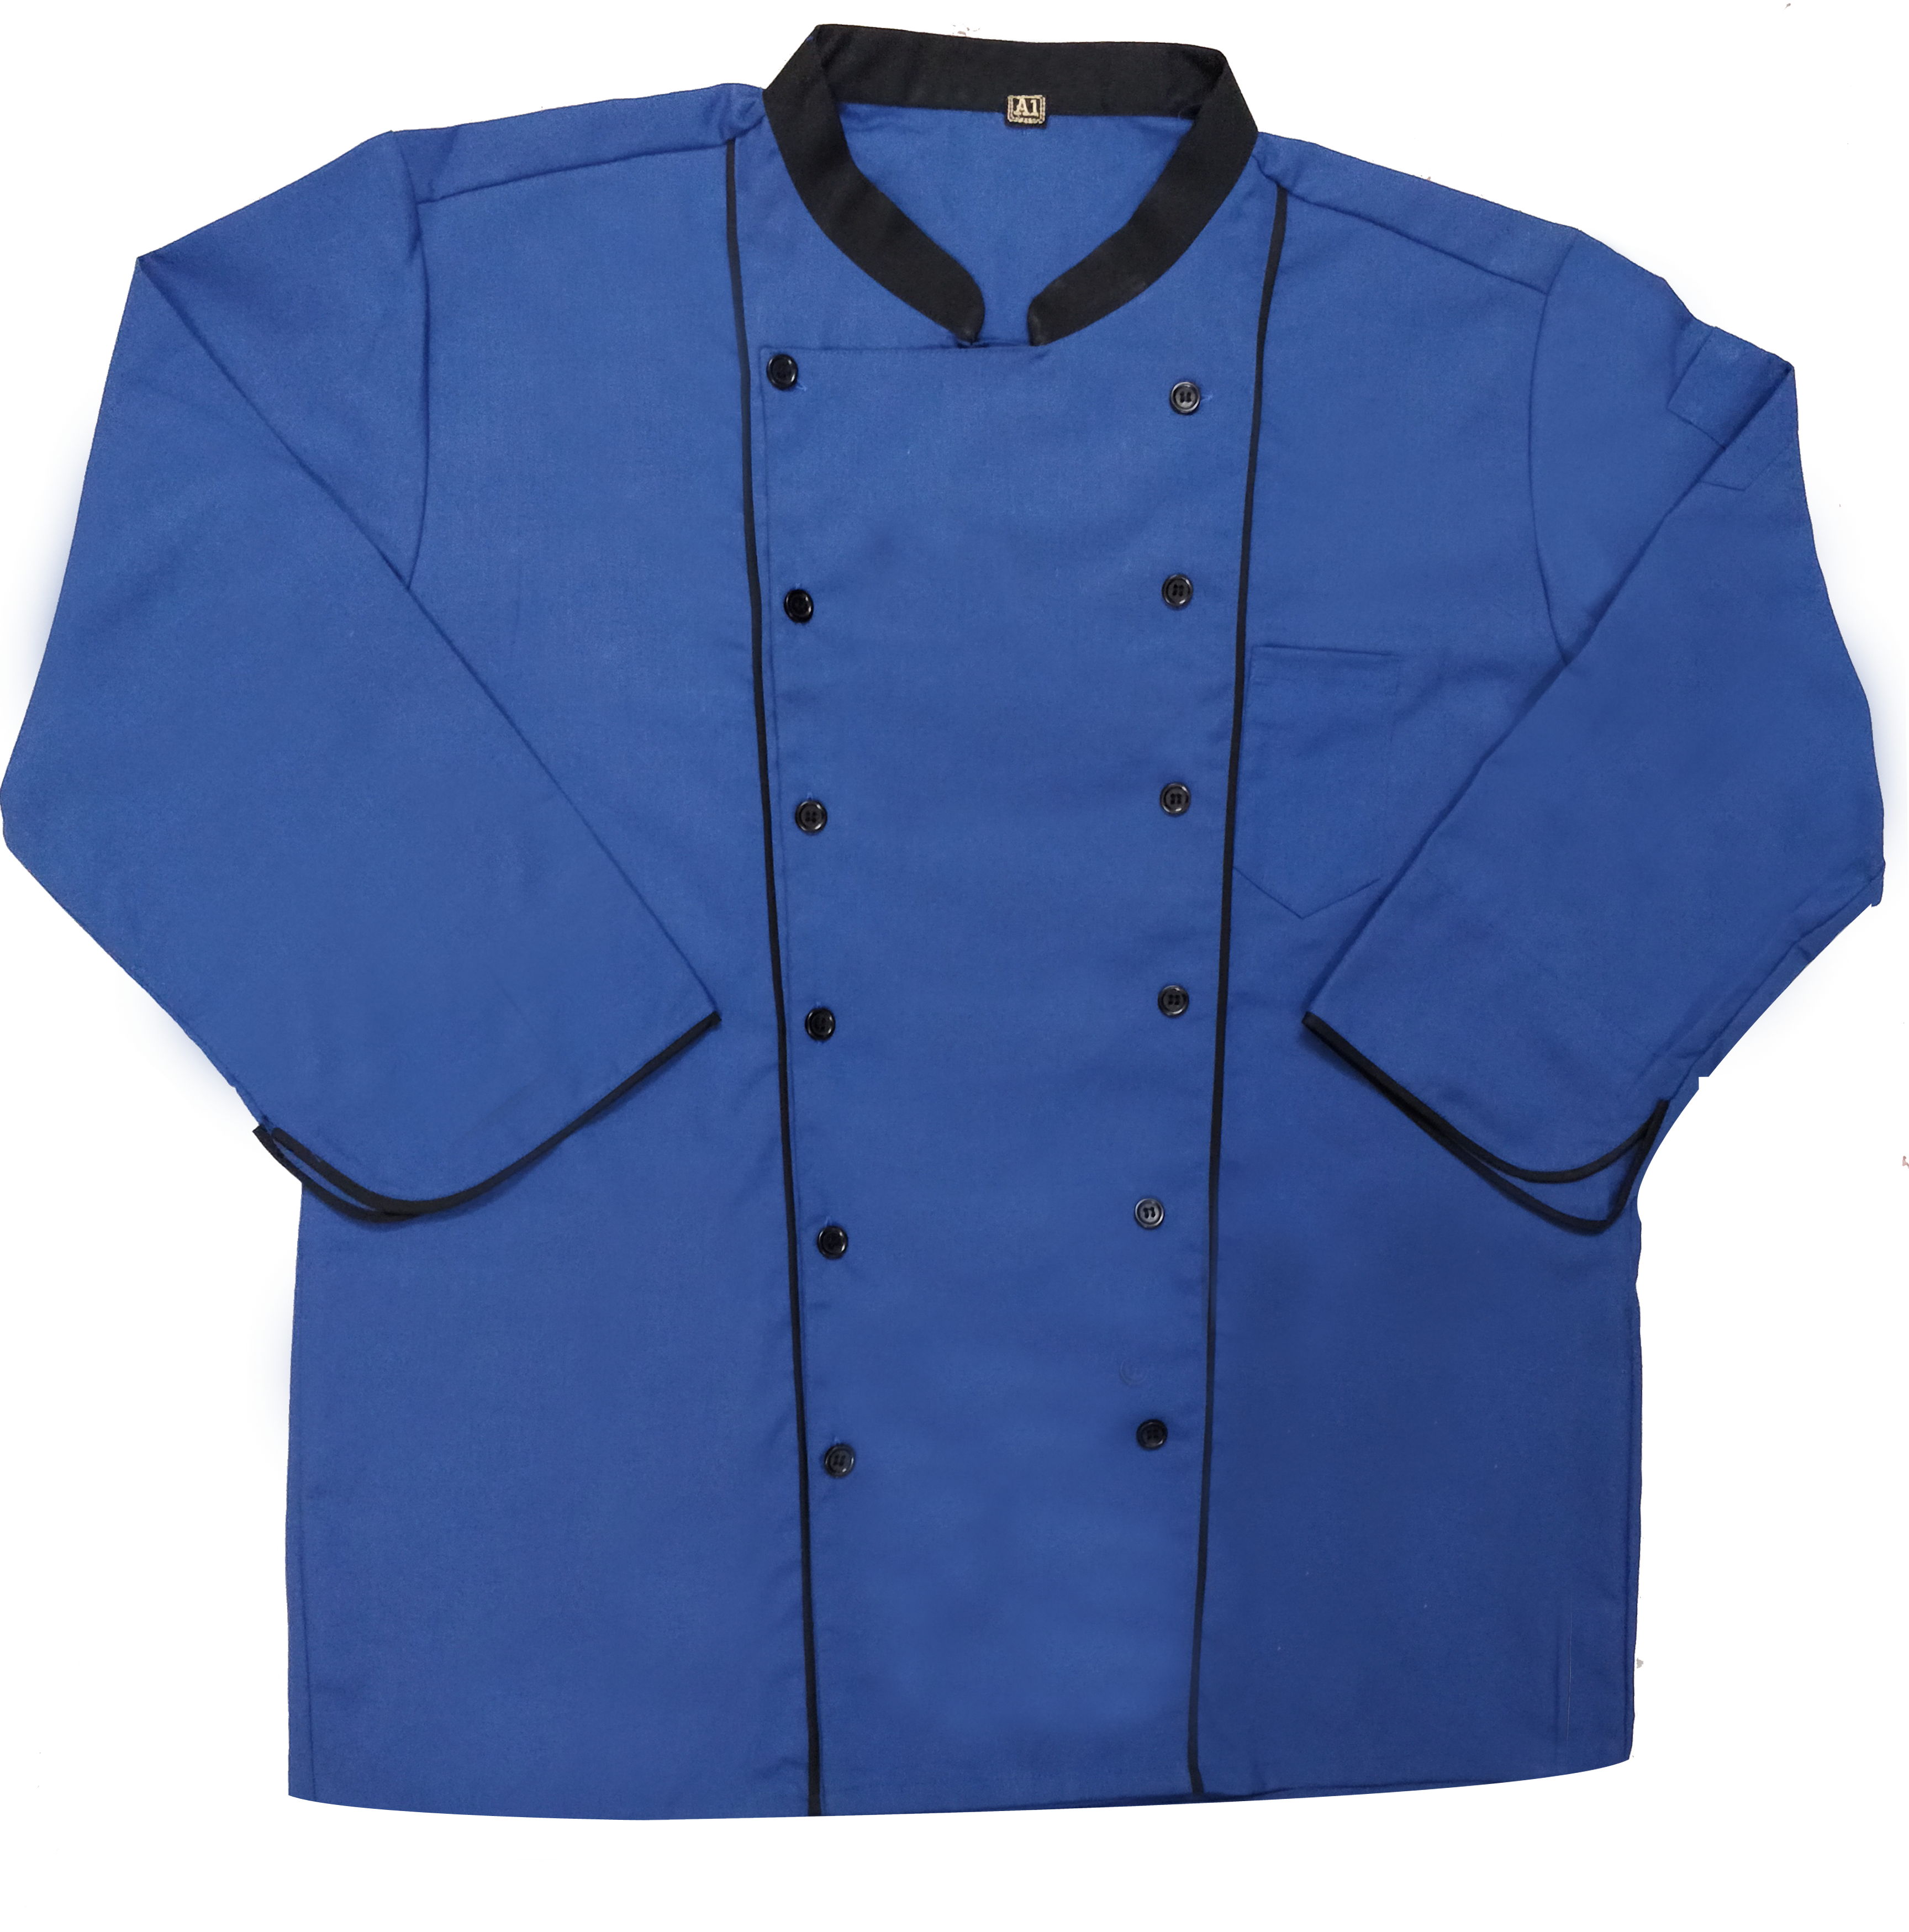 Home chefs. Jacket clipart chef coat